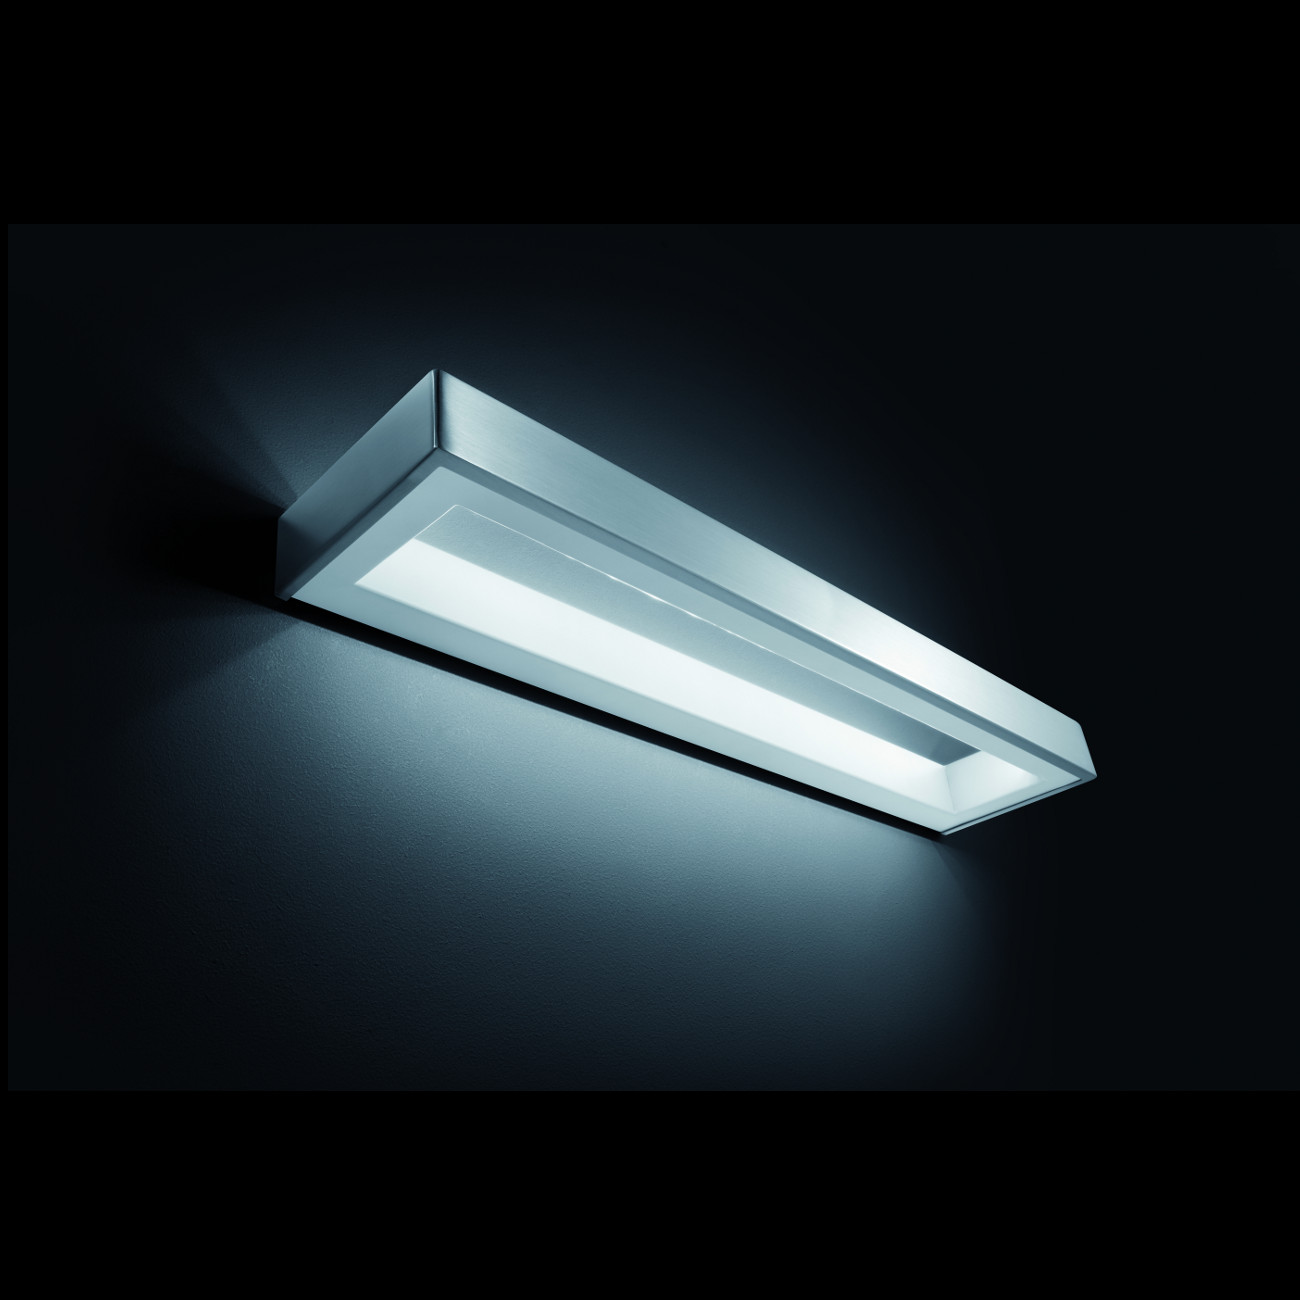 Wandlampen Up Light Zeitgemäße Wandleuchte Up And Downlight Led Groß Design